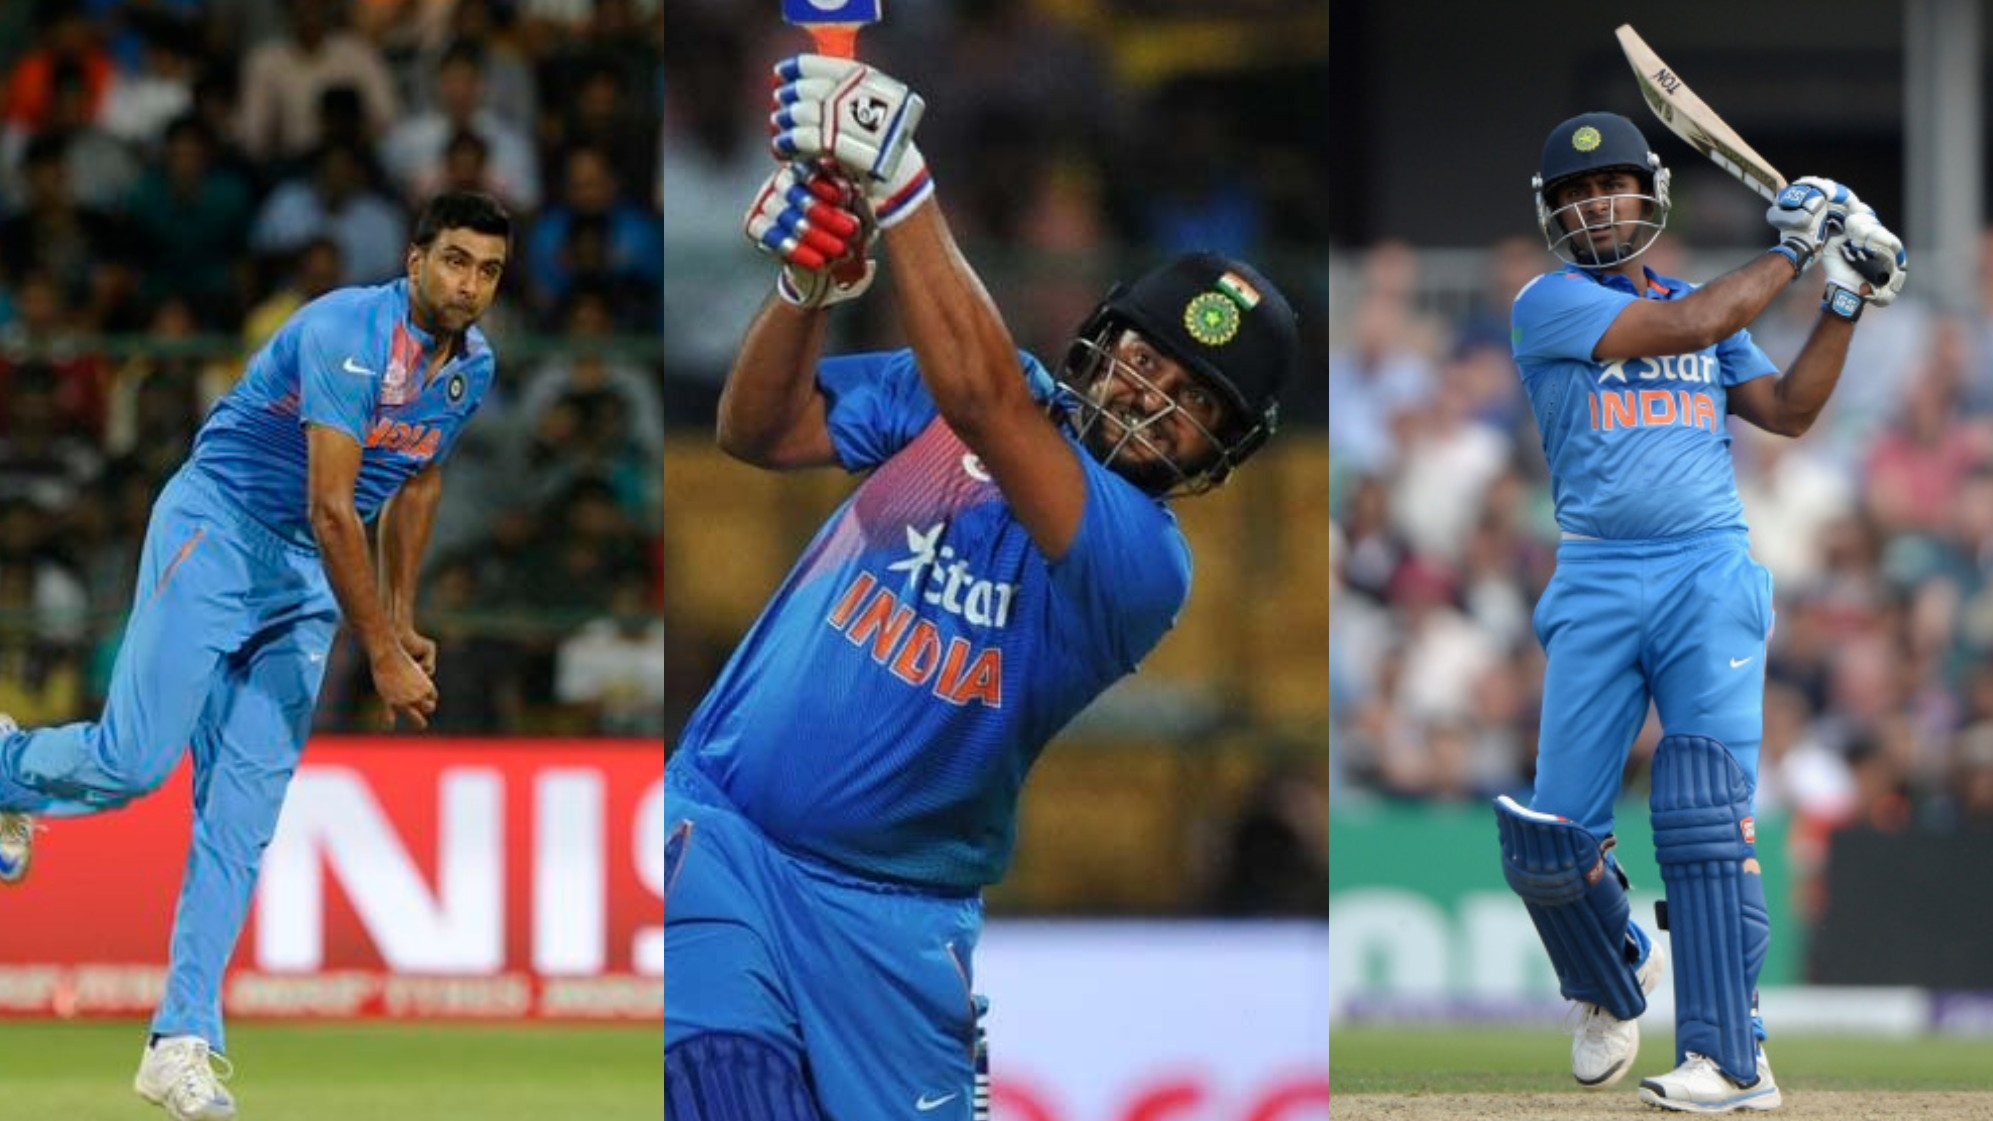 5 players who are not retired but are no longer in Team India plans for ICC T20 World Cup 2020